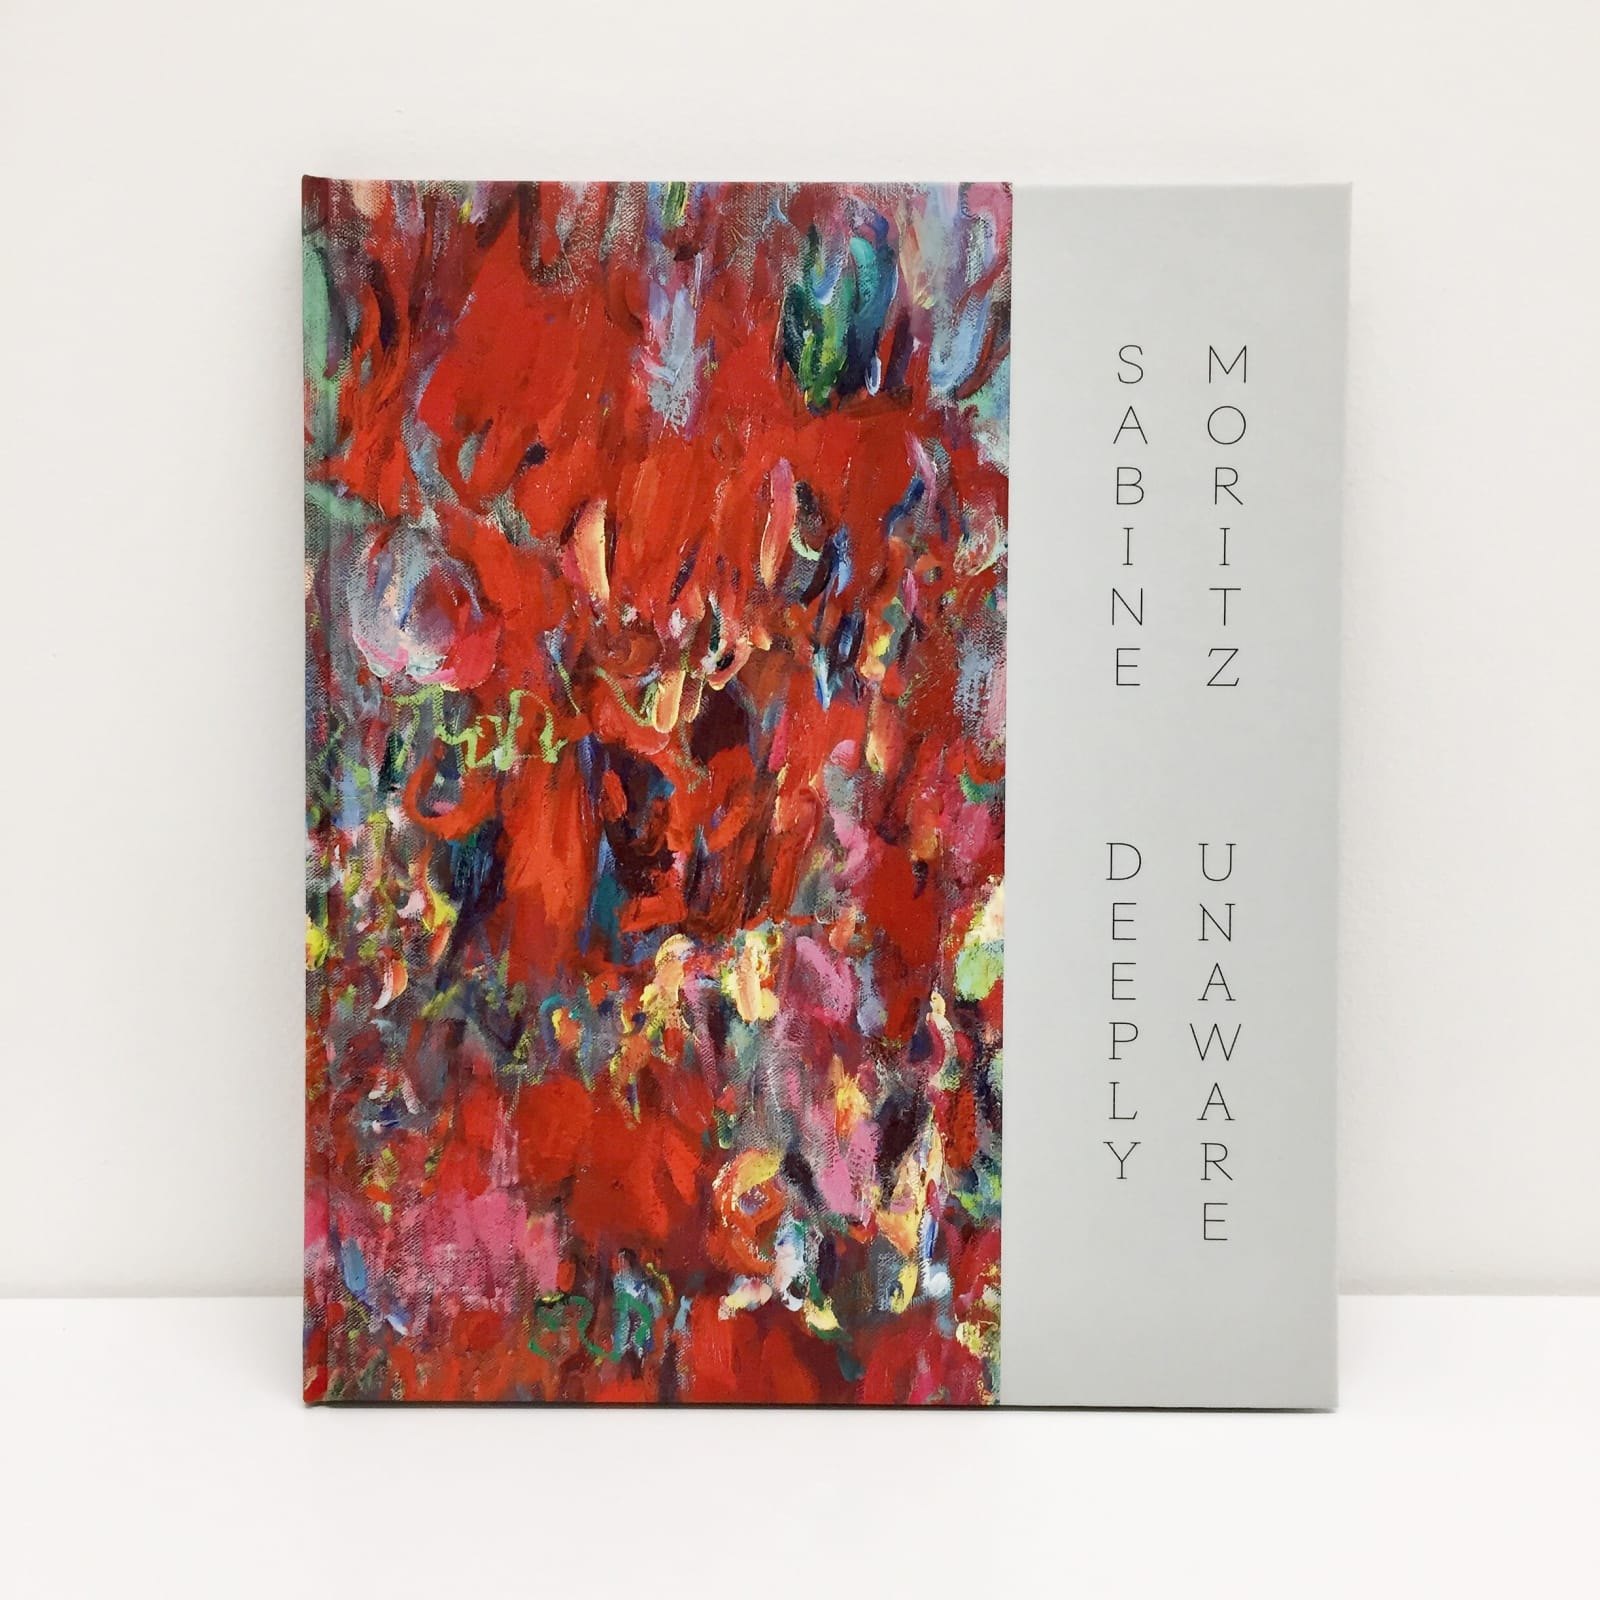 Catalogue cover depicting a Sabine Moritz abstract painting, titled Sabine Moritz Deeply Unaware.